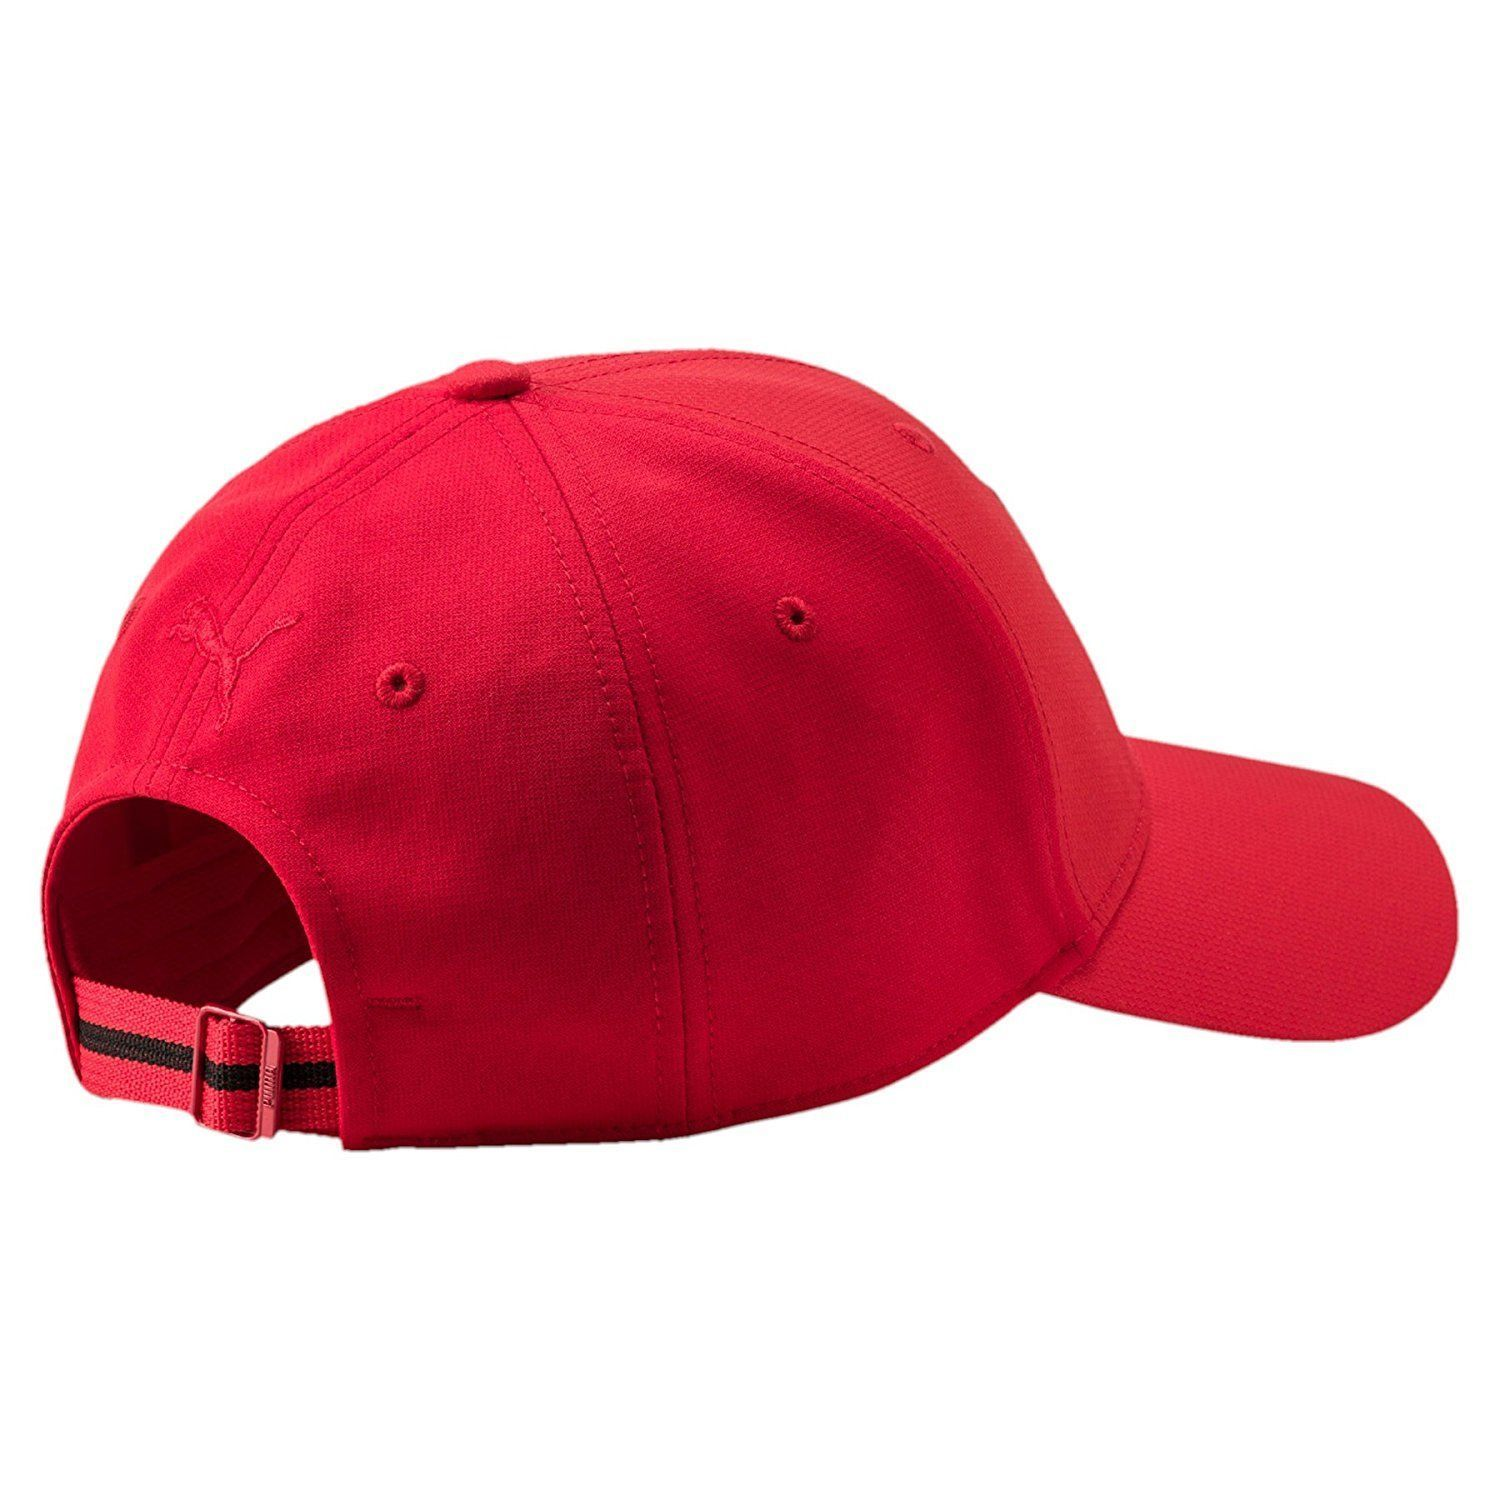 ferrari will for t part clothes master worry kimi don buy galore mall polo one original the img daddy kids shopping php you digital scrapaholic